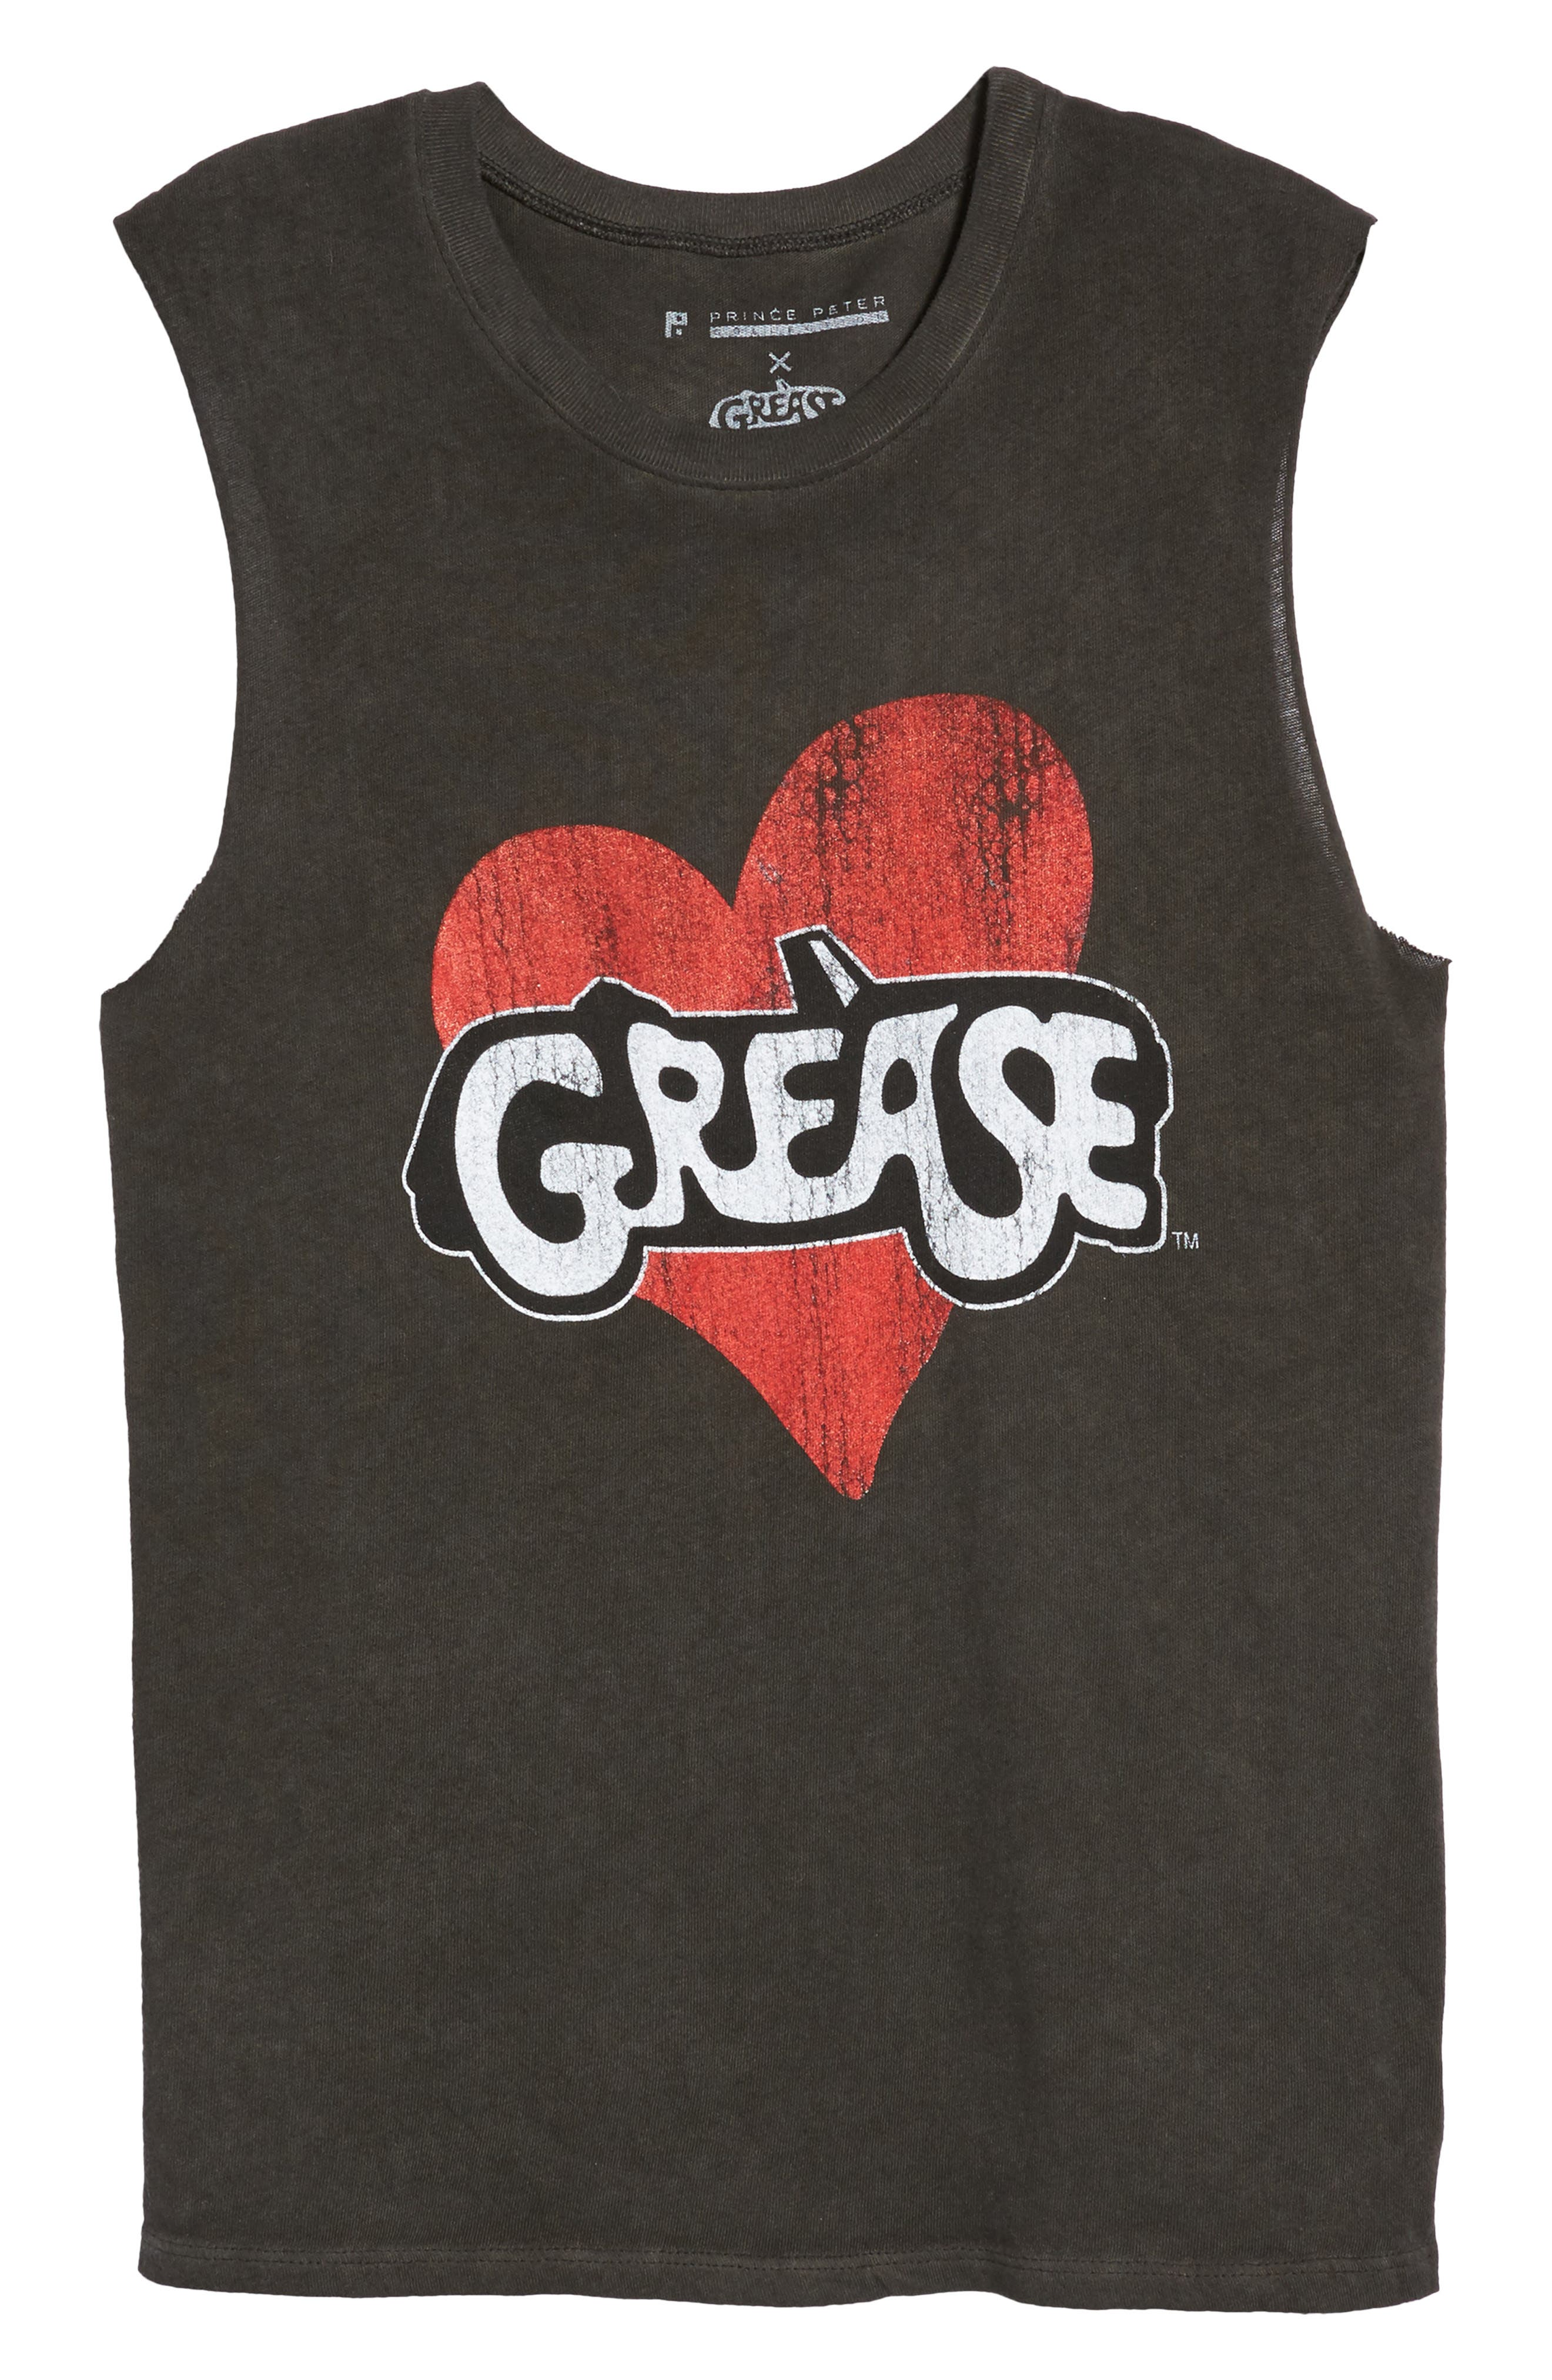 x Grease Muscle Tee,                             Alternate thumbnail 6, color,                             Vintage Black